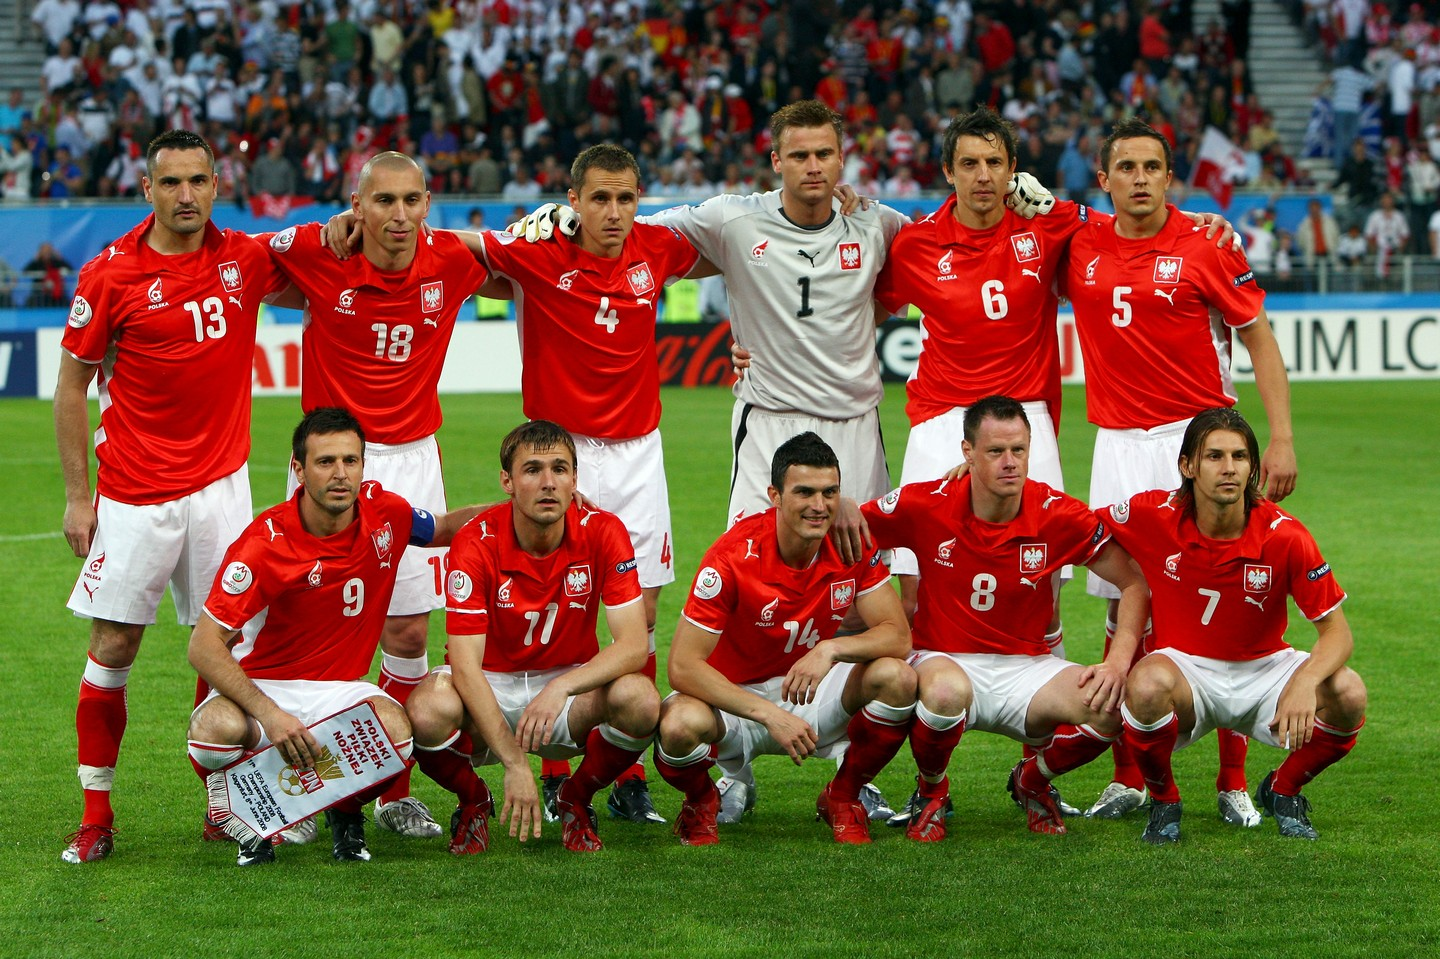 England Football Team Wallpapers Download Desktop Wallpaper 1440x959